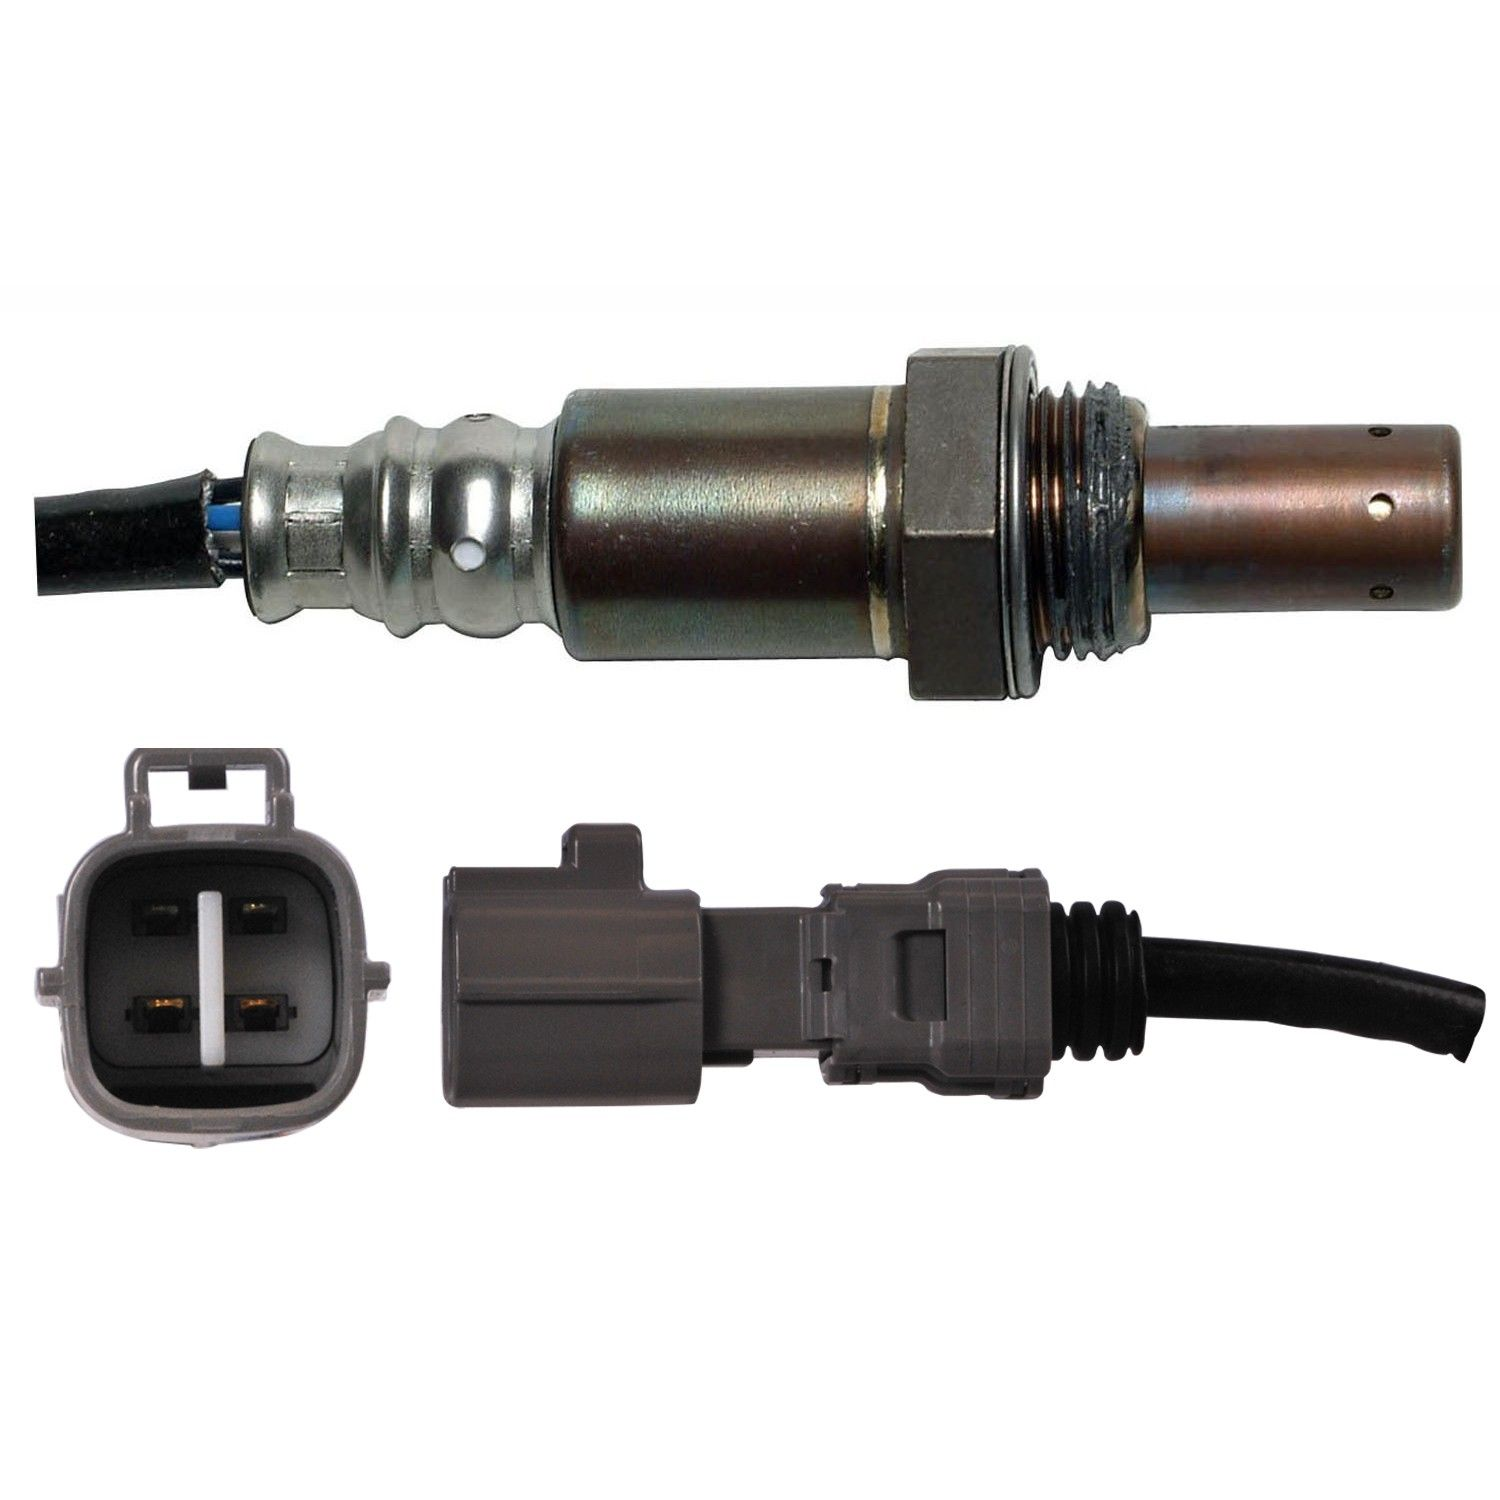 2015 Toyota Sienna Oxygen Sensor - Downstream Left 6 Cyl 3.5L (Denso 234-4946)  DENSO is the O.E. Manufacturer / Oxygen Sensor .